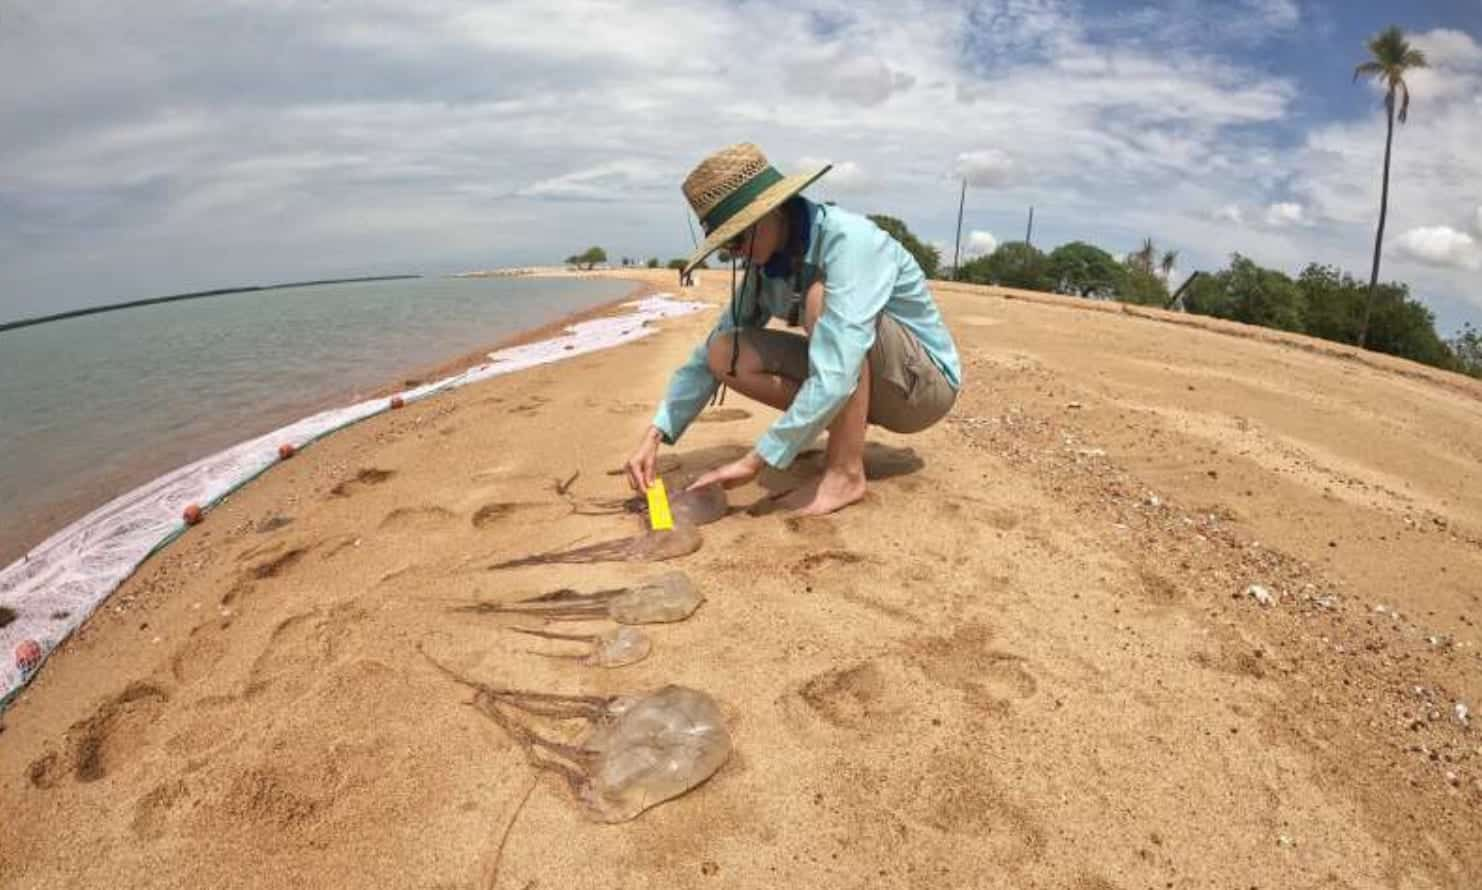 Off-the-shelf drones to detect dangerous jellyfish in Australia